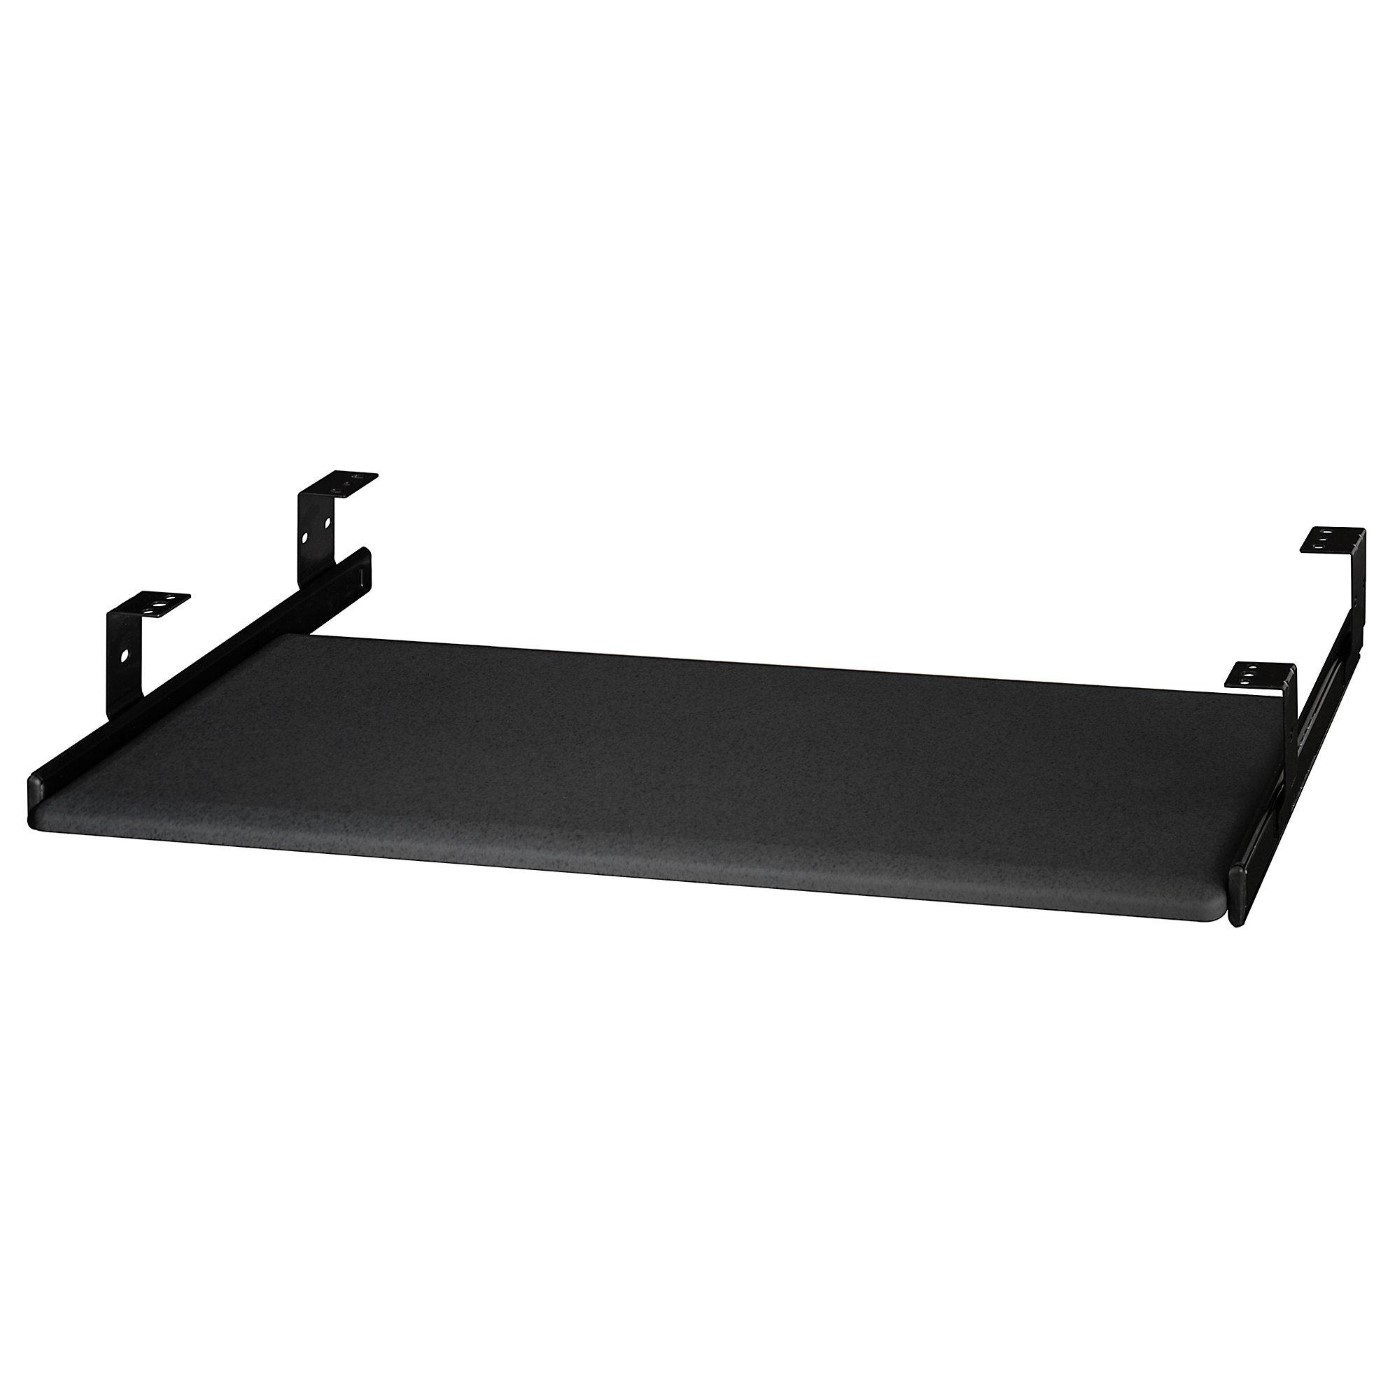 <font color=#c60><b>BUSH BUSINESS FURNITURE UNIVERSAL KEYBOARD SHELF. FREE SHIPPING</font></b></font></b>